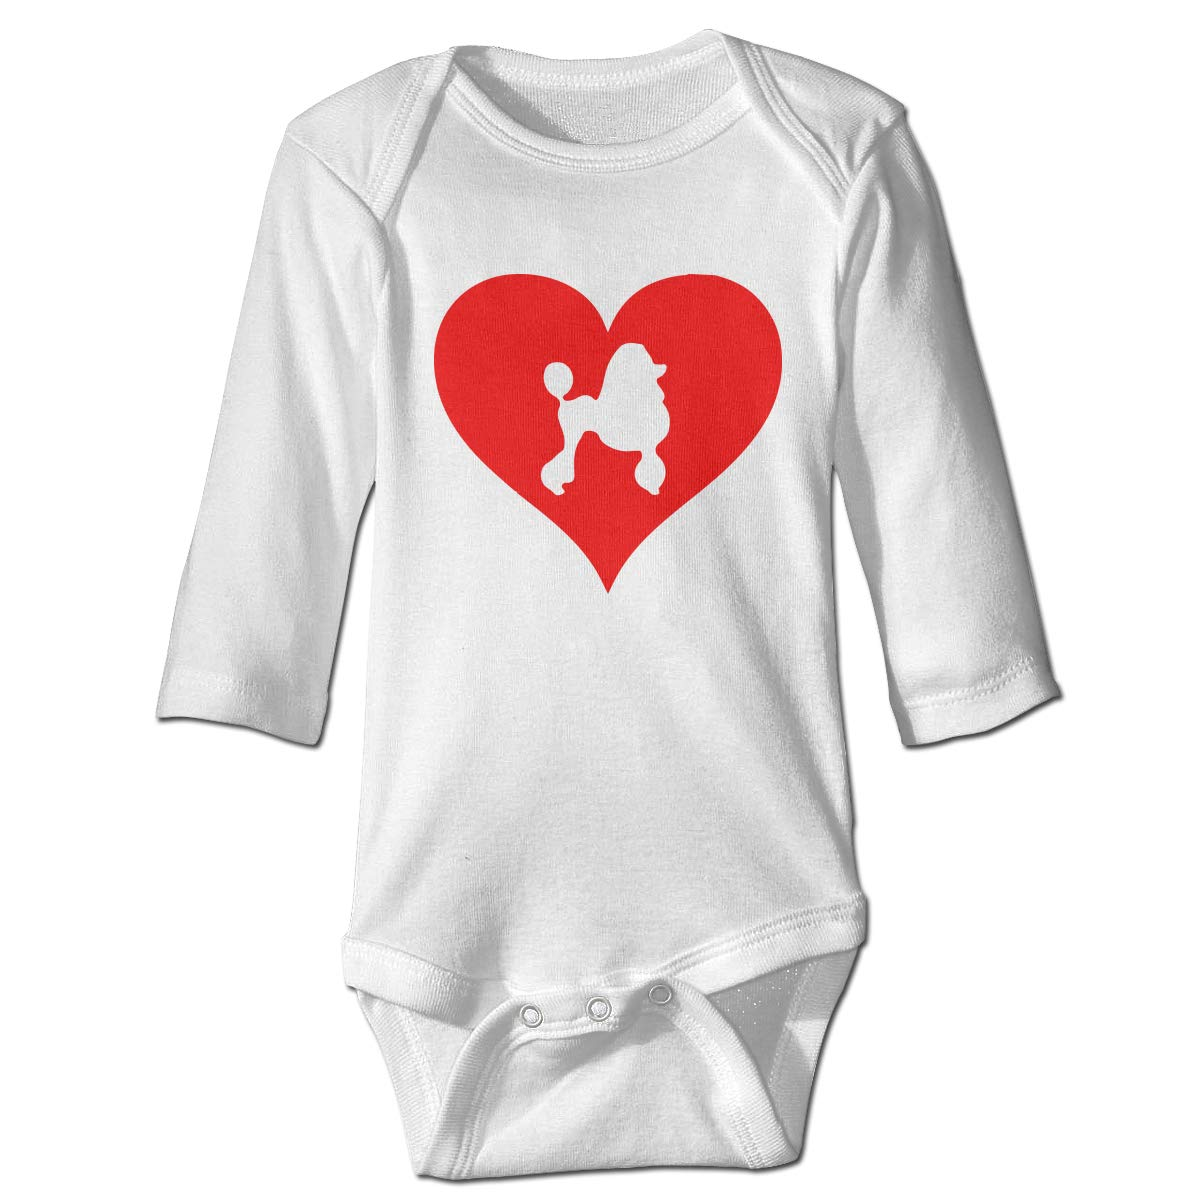 Newborn Baby Boys Girls Long Sleeve Jumpsuit Romper Love Heart Poodle Print Jumpsuit